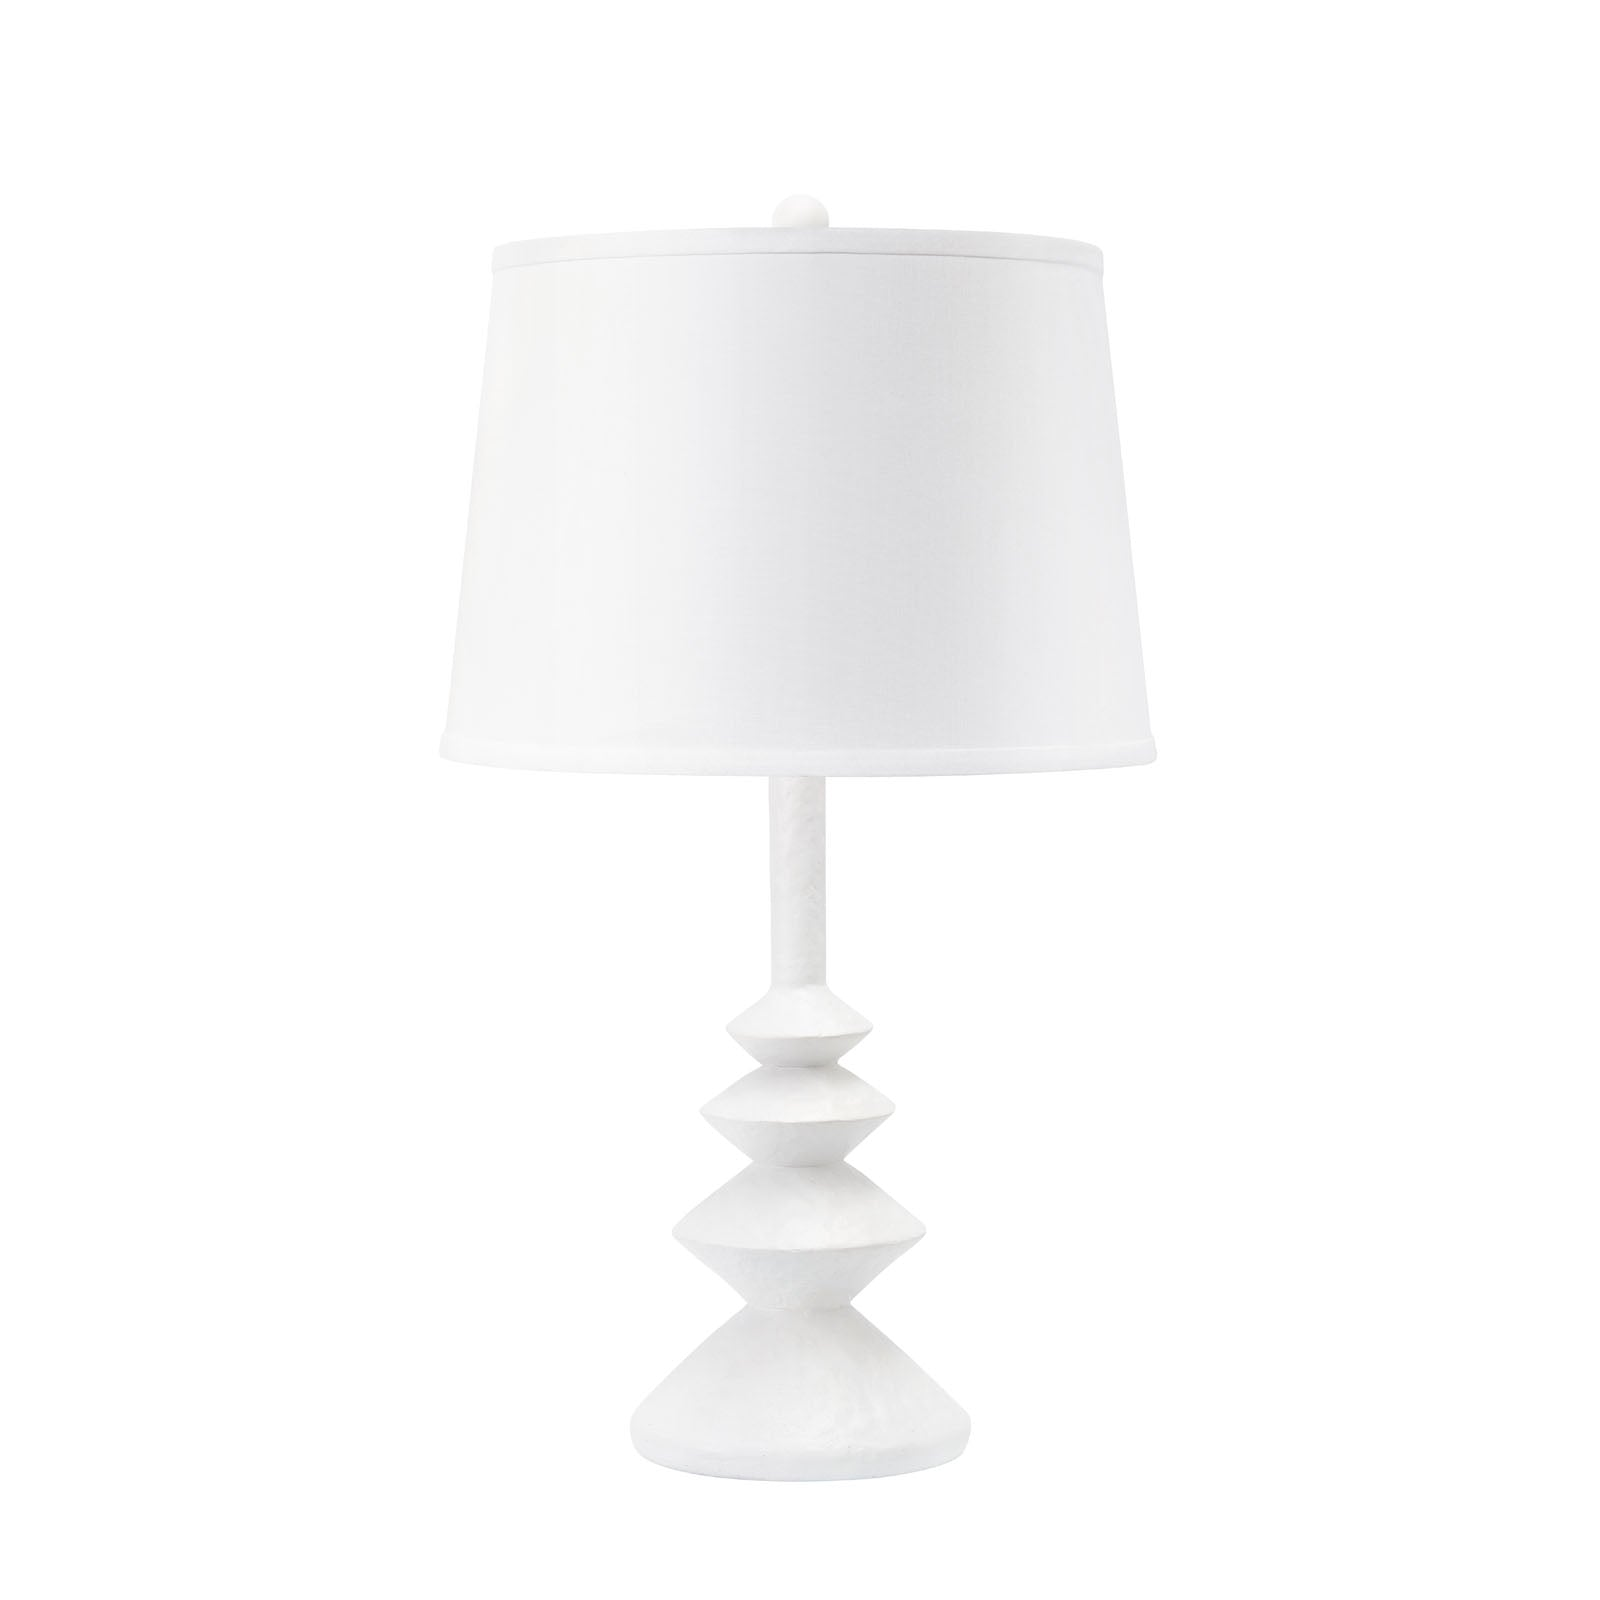 Collette Lamp